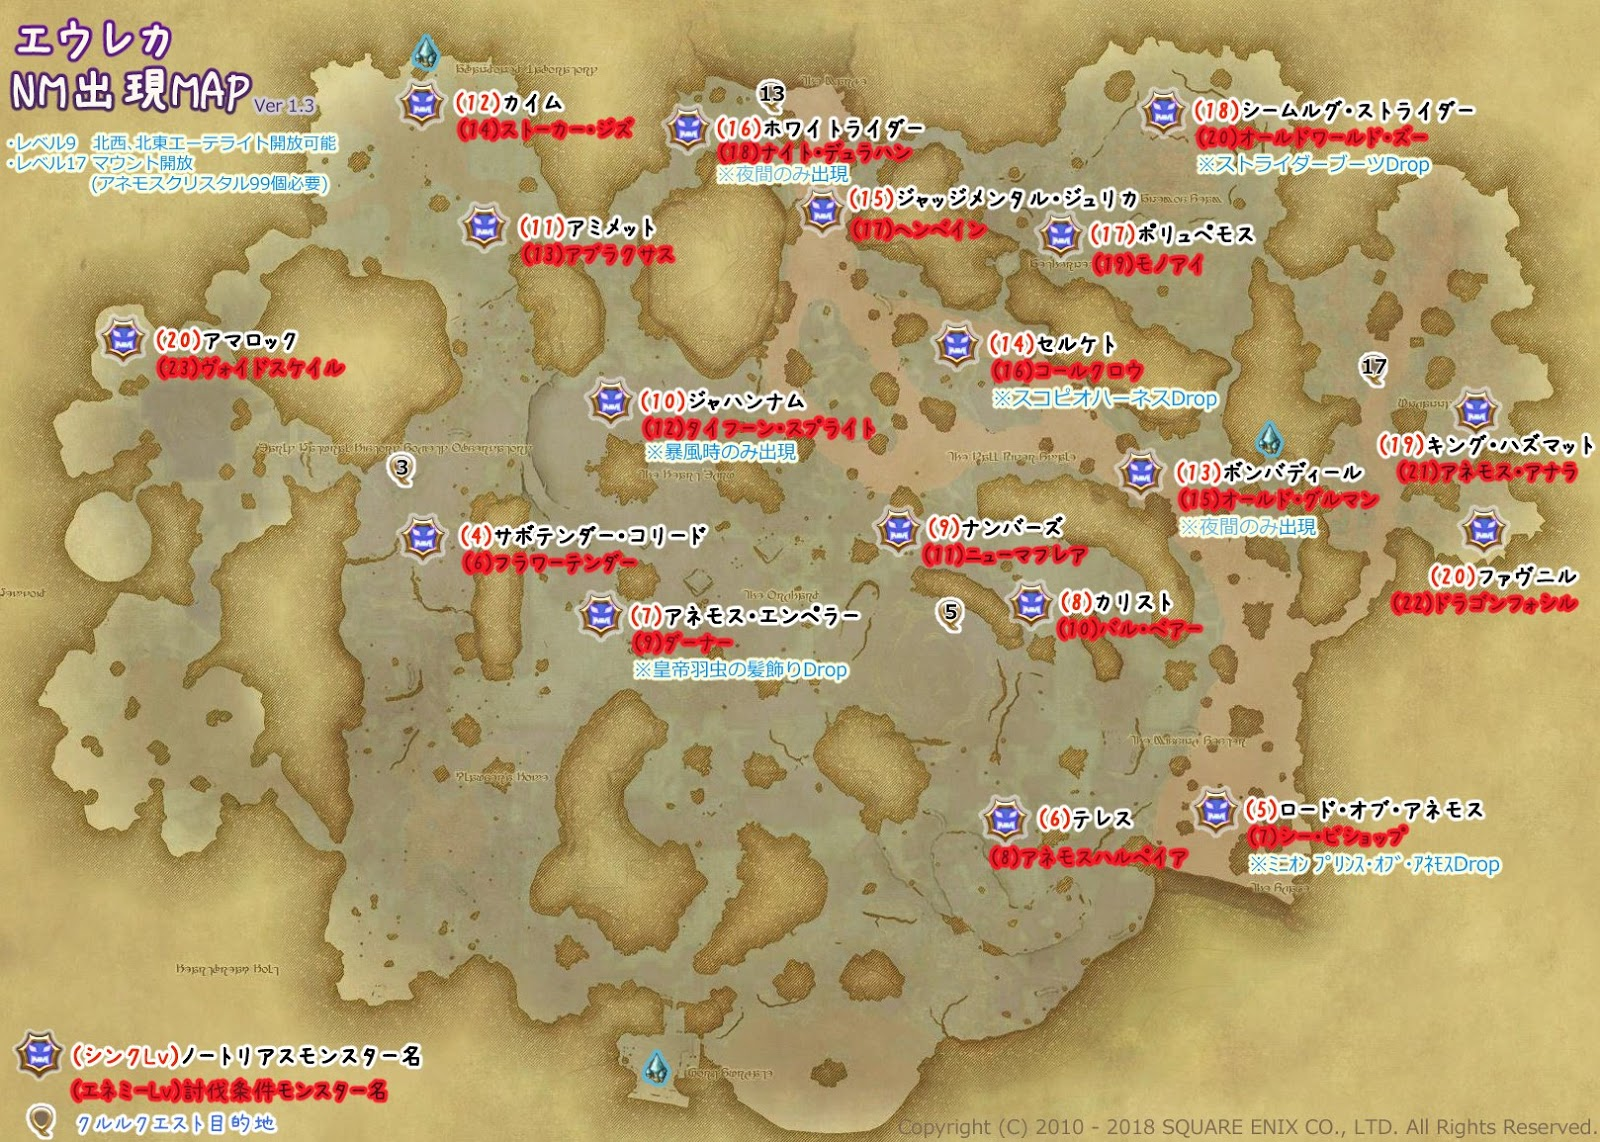 https//www.reddit.com/r/ffxiv /comments/84964v/eureka_map_mob_elements_levels_and_locations/